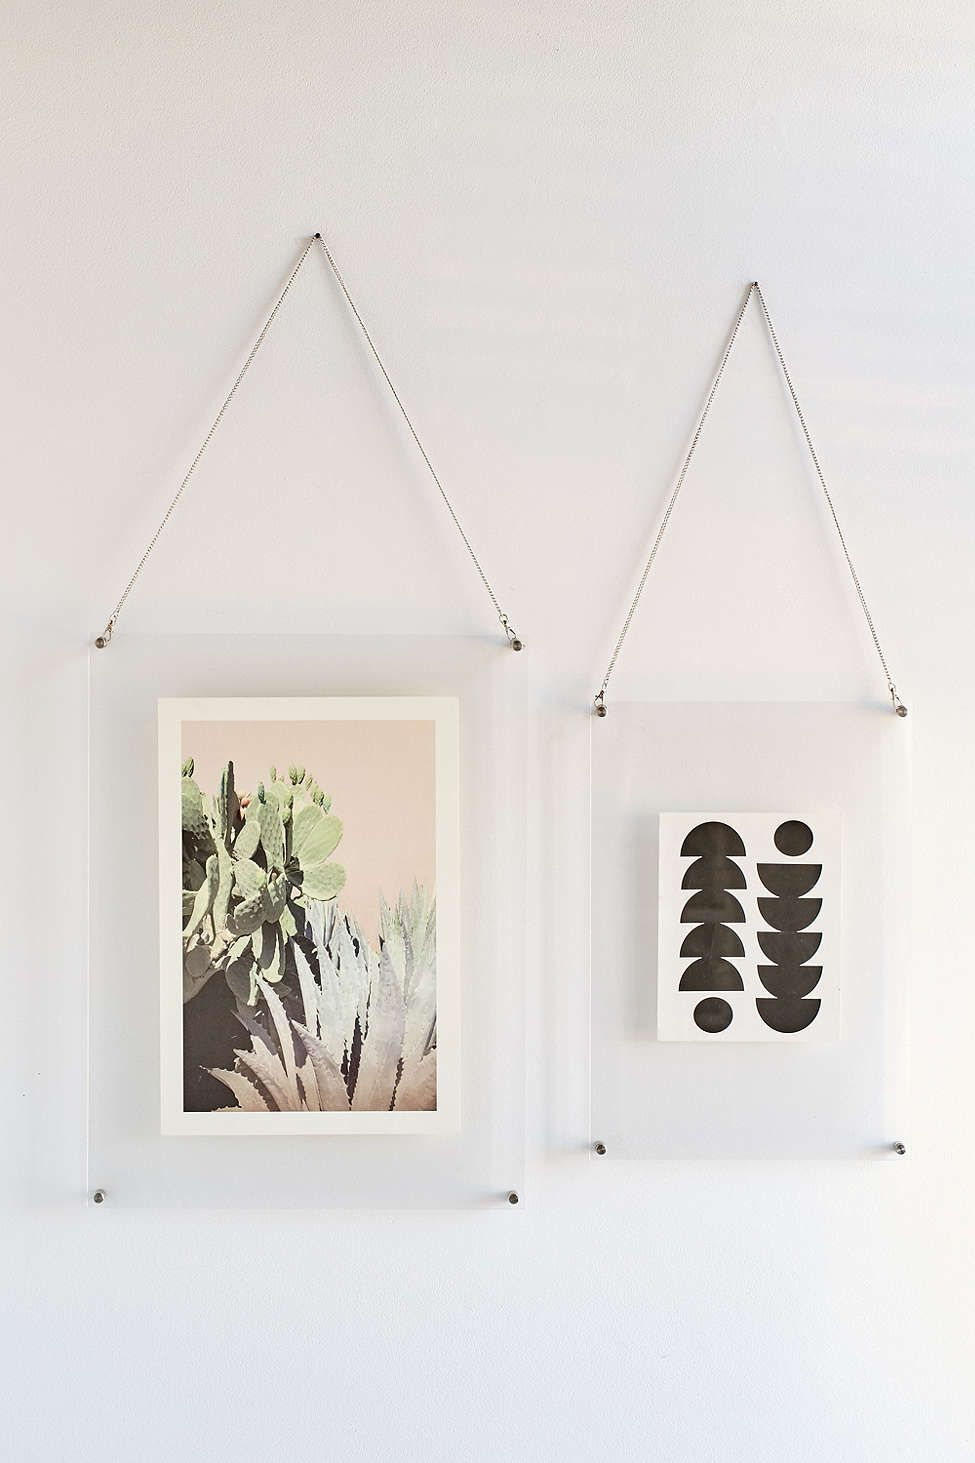 Rahmenlose Bilderrahmen Acrylic Hanging Display Frame Office Glam Vidrio Casitas Diy